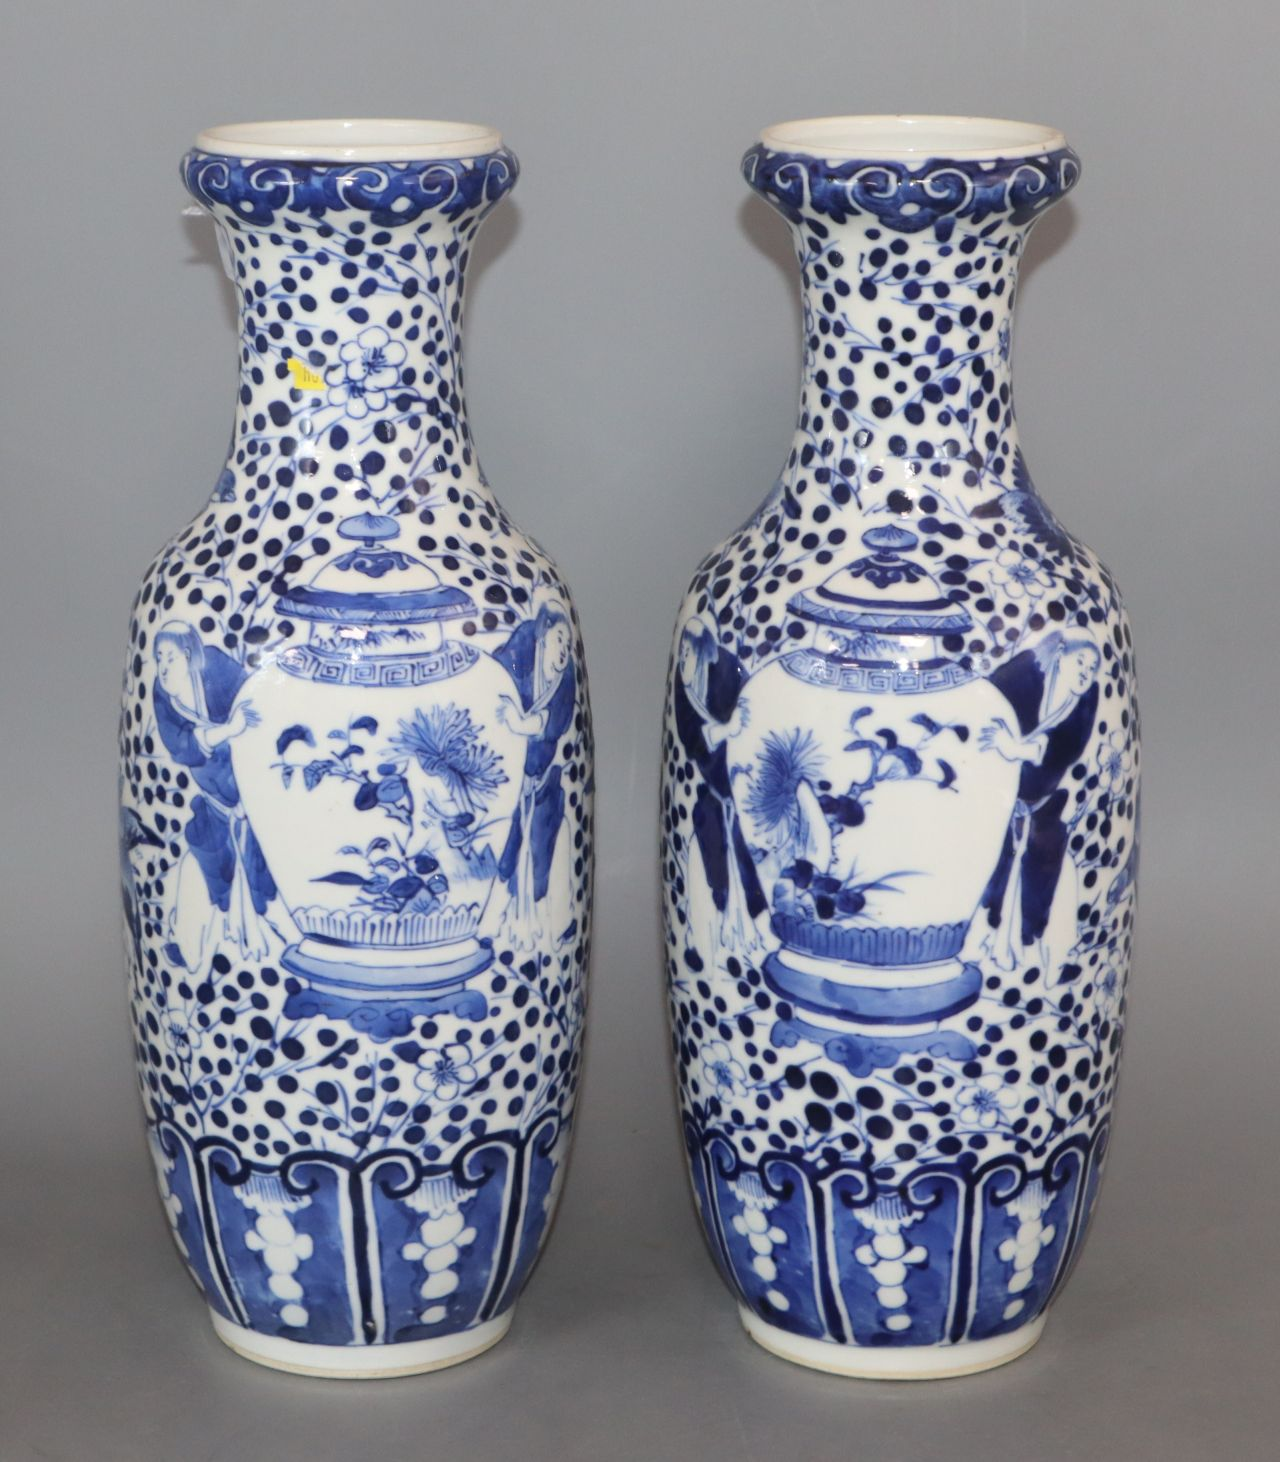 A pair of 19th century Chinese blue and white vases height 30cm